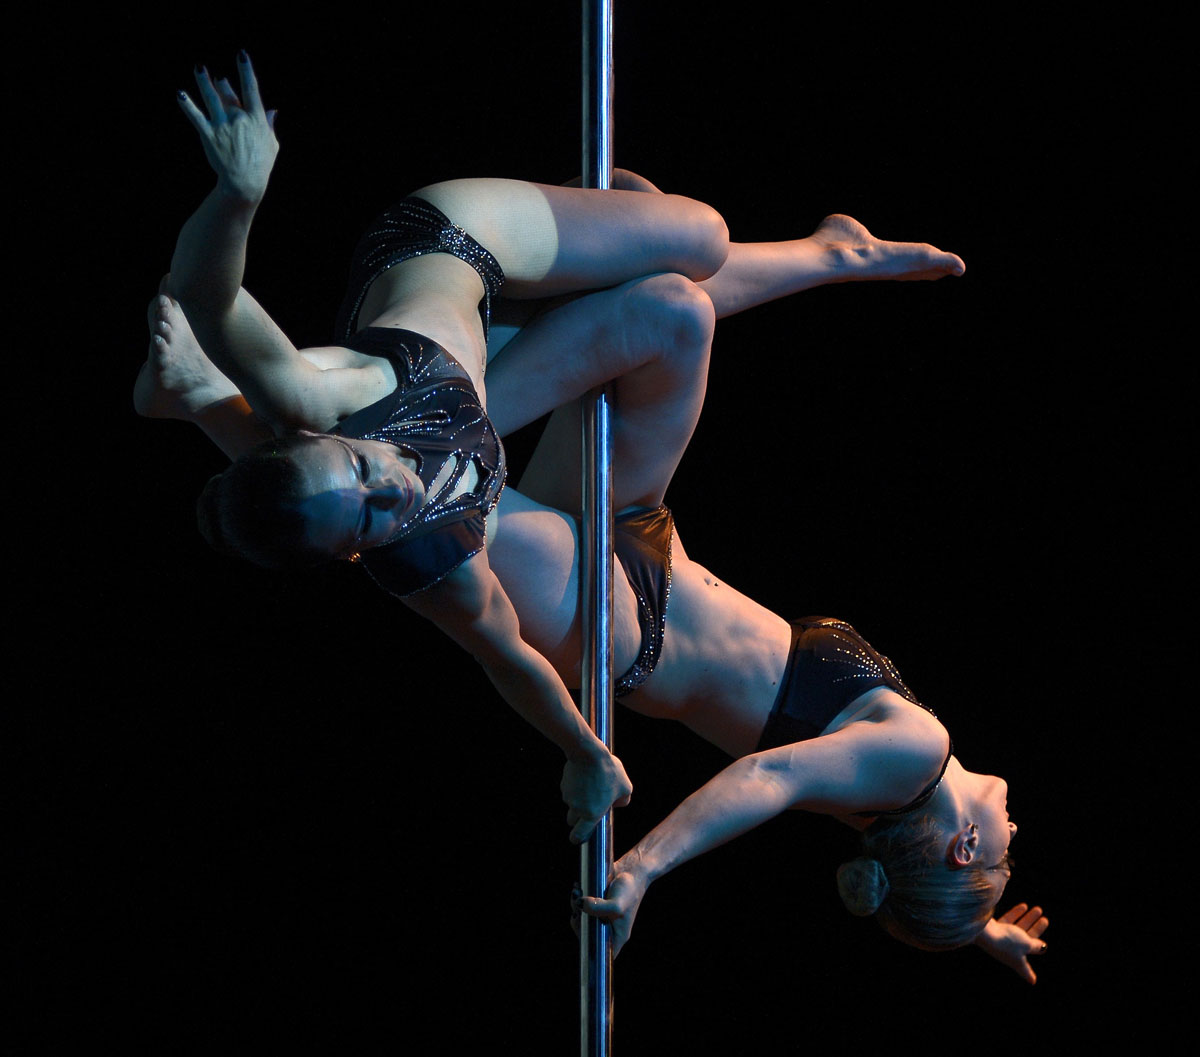 South American pole dancers swing through Buenos Aires